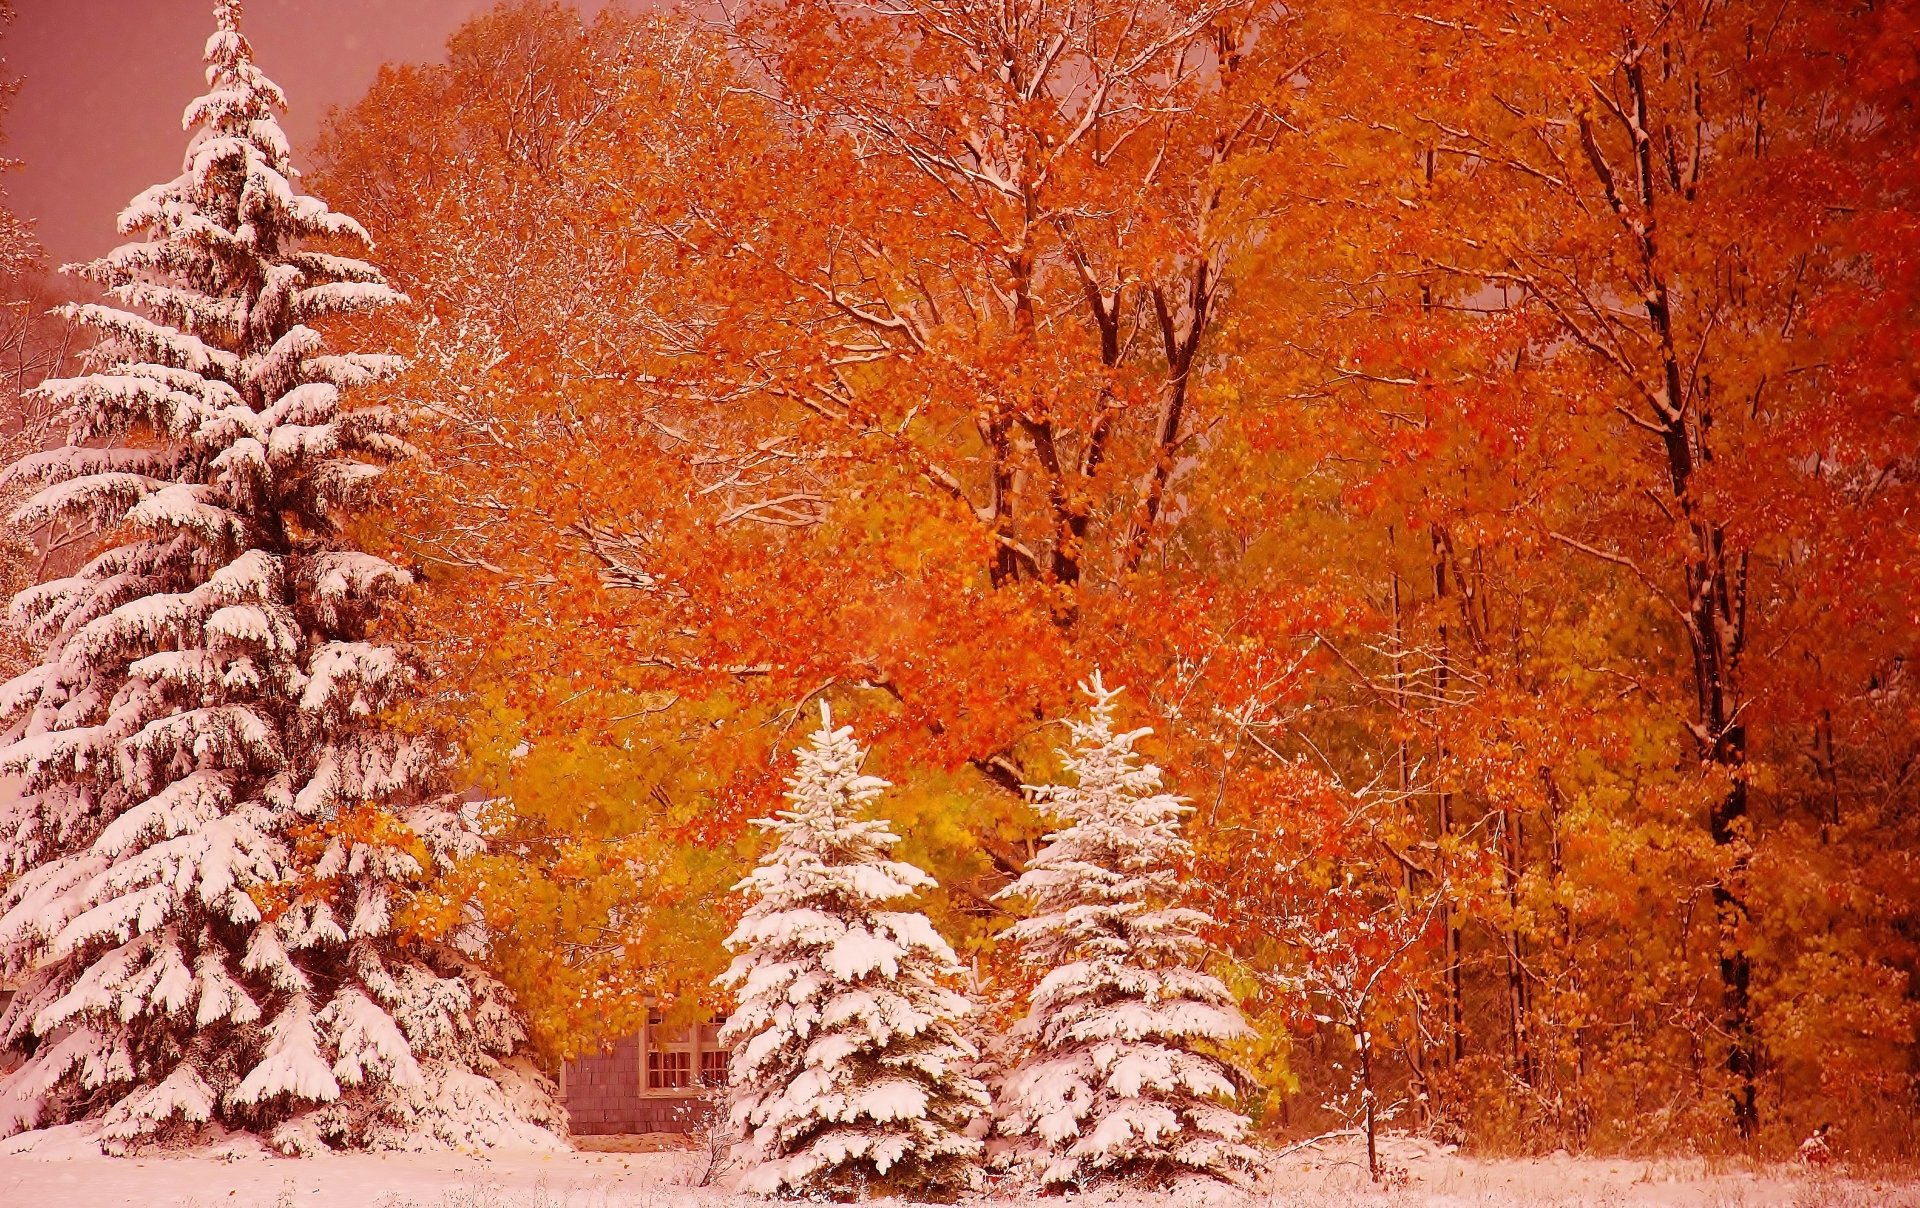 Fall Foliage Wallpaper For Iphone First Snow 4k Ultra Hd Wallpaper Background Image